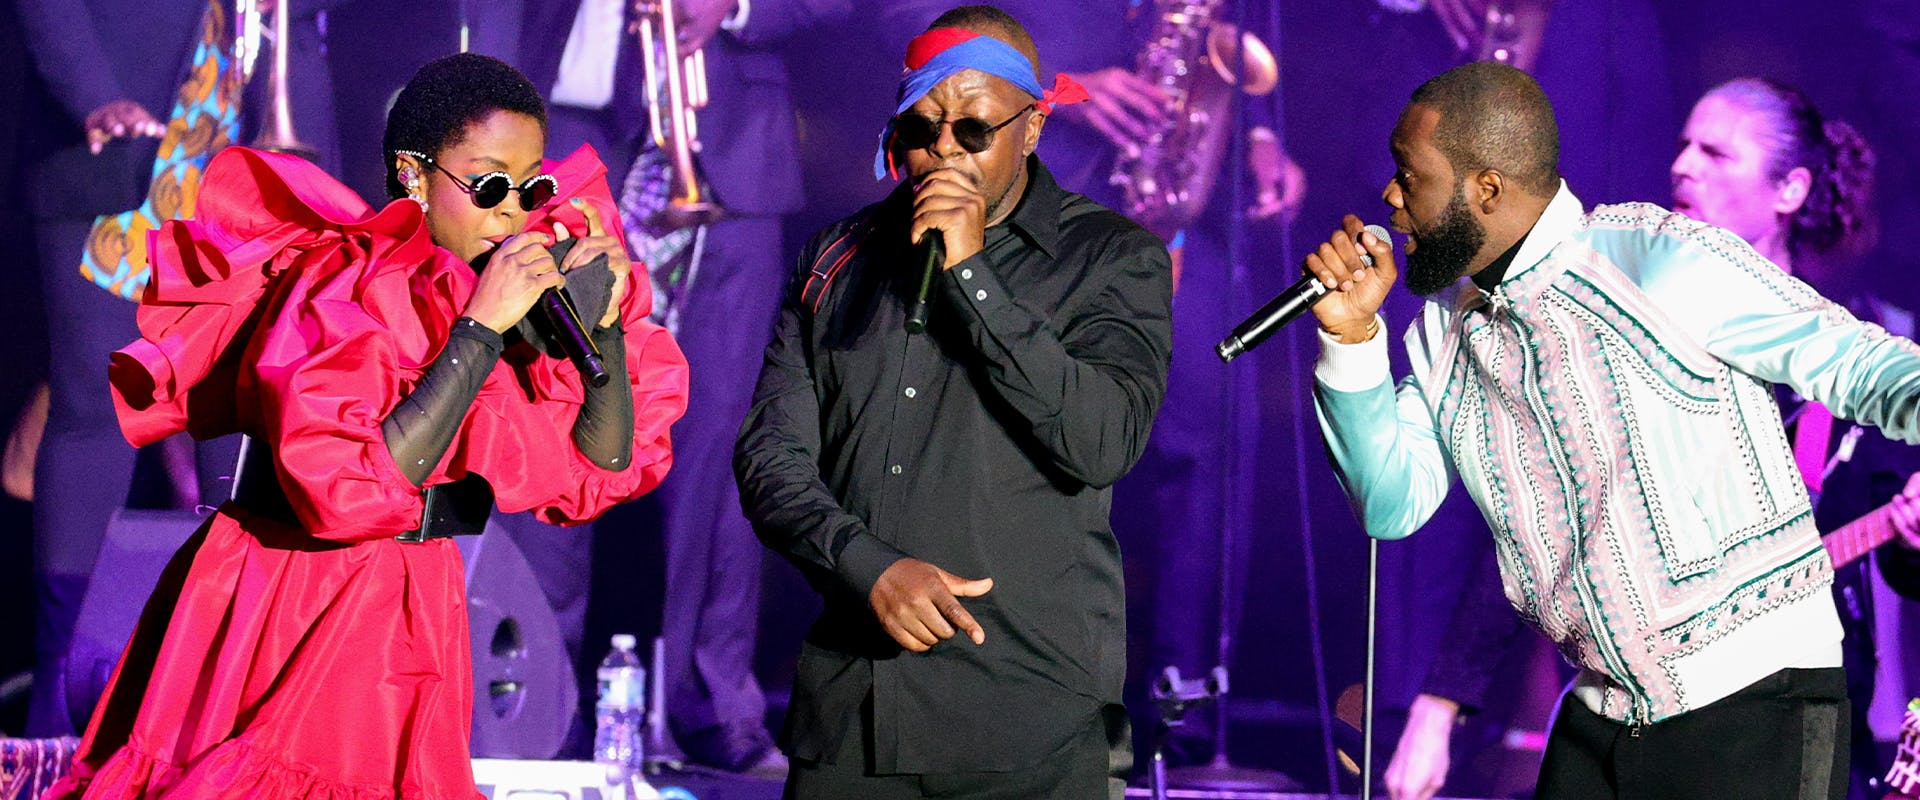 Fugees Performing